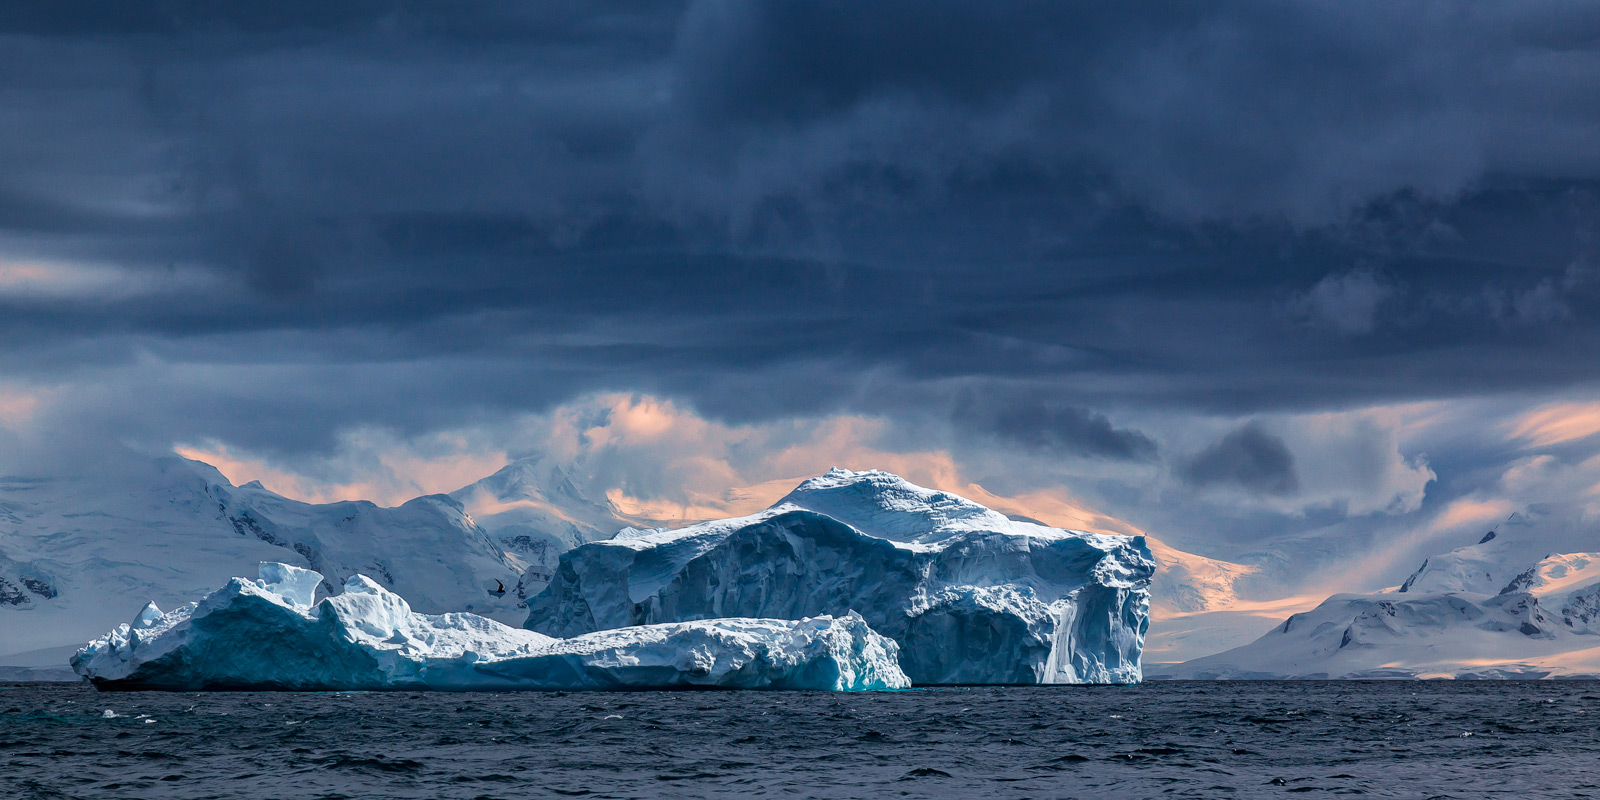 A Limited Edition, Fine Art photograph in Antarctica of a dramatic scene of two massive icebergs floating in a bay near Cuverille...